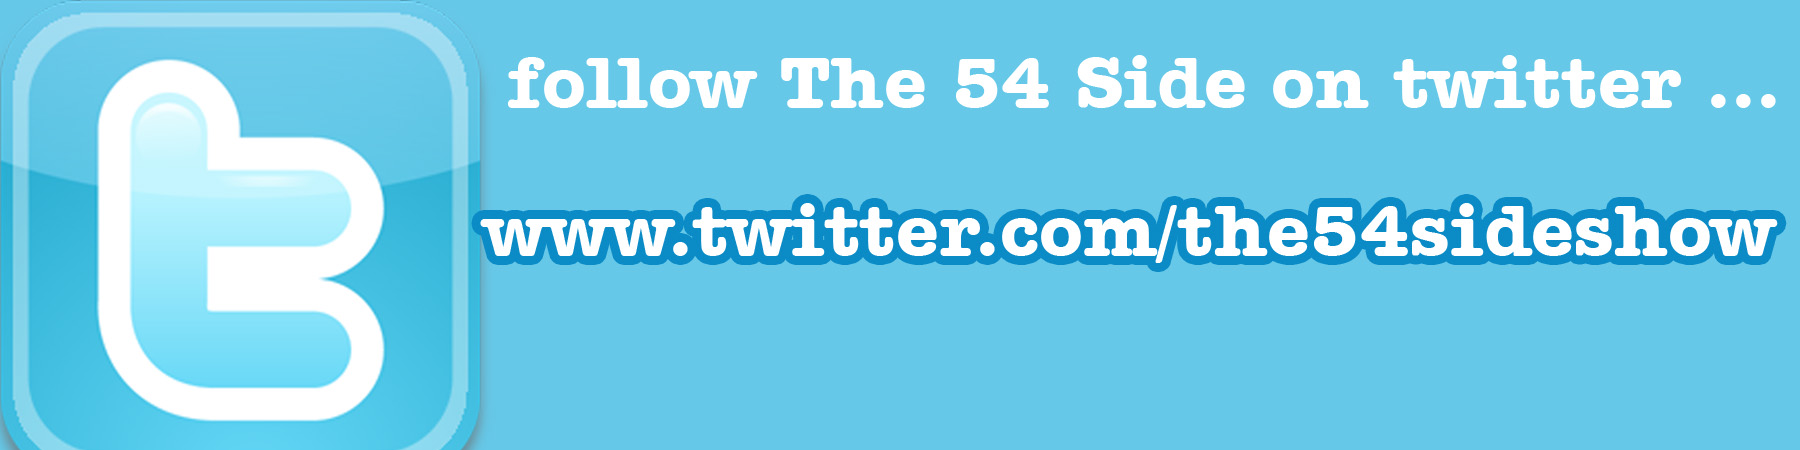 THE 54 SIDE SHOW Twitter Page